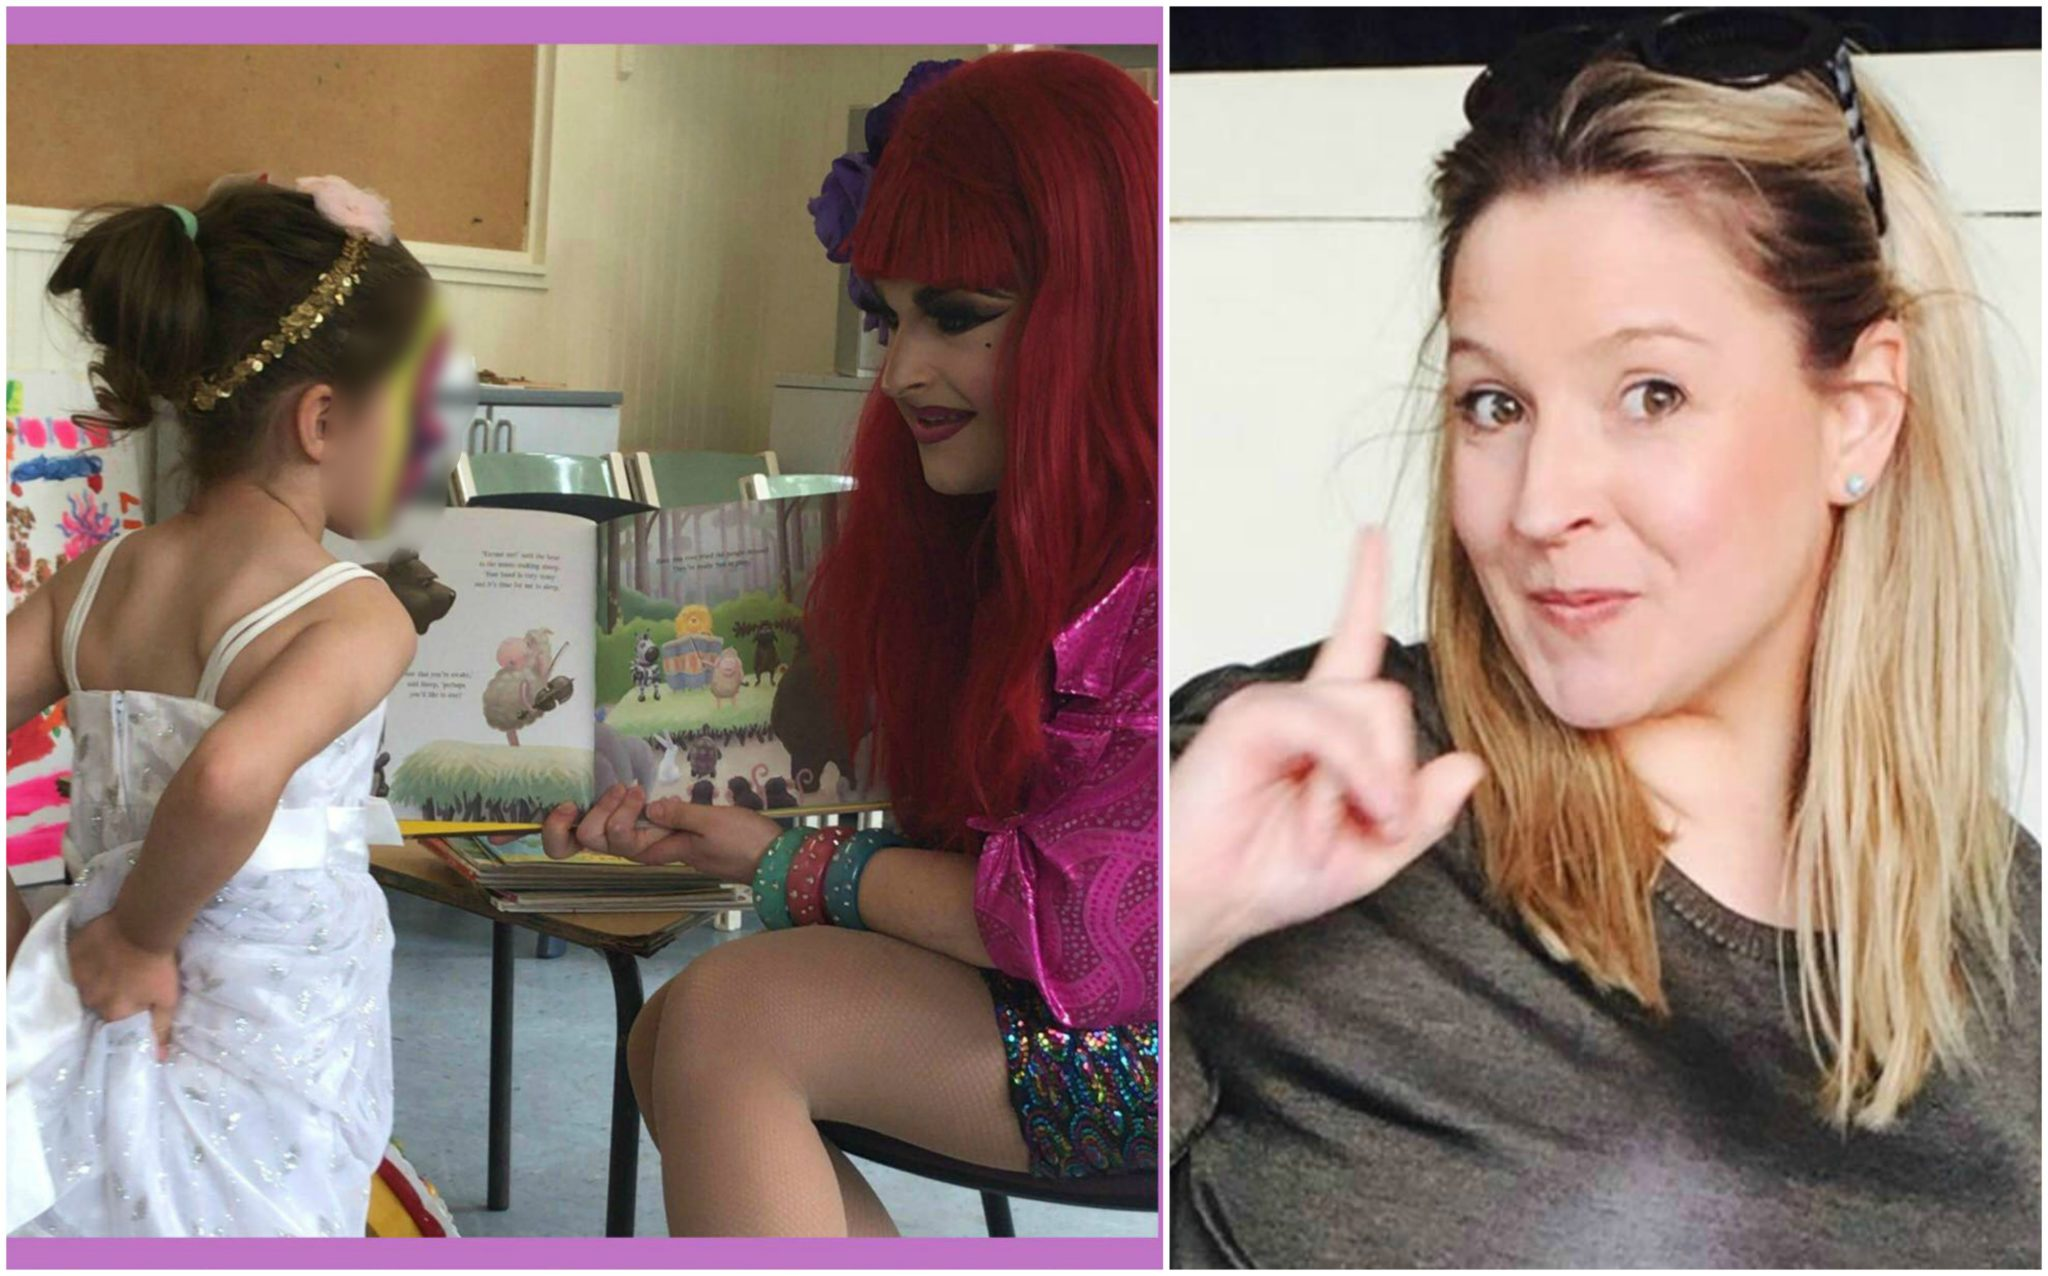 Hannah Conda sitting in small chair with red wig and open children's book reading to a girl with a painted face. Right image is of political posting mumma wagging her finger